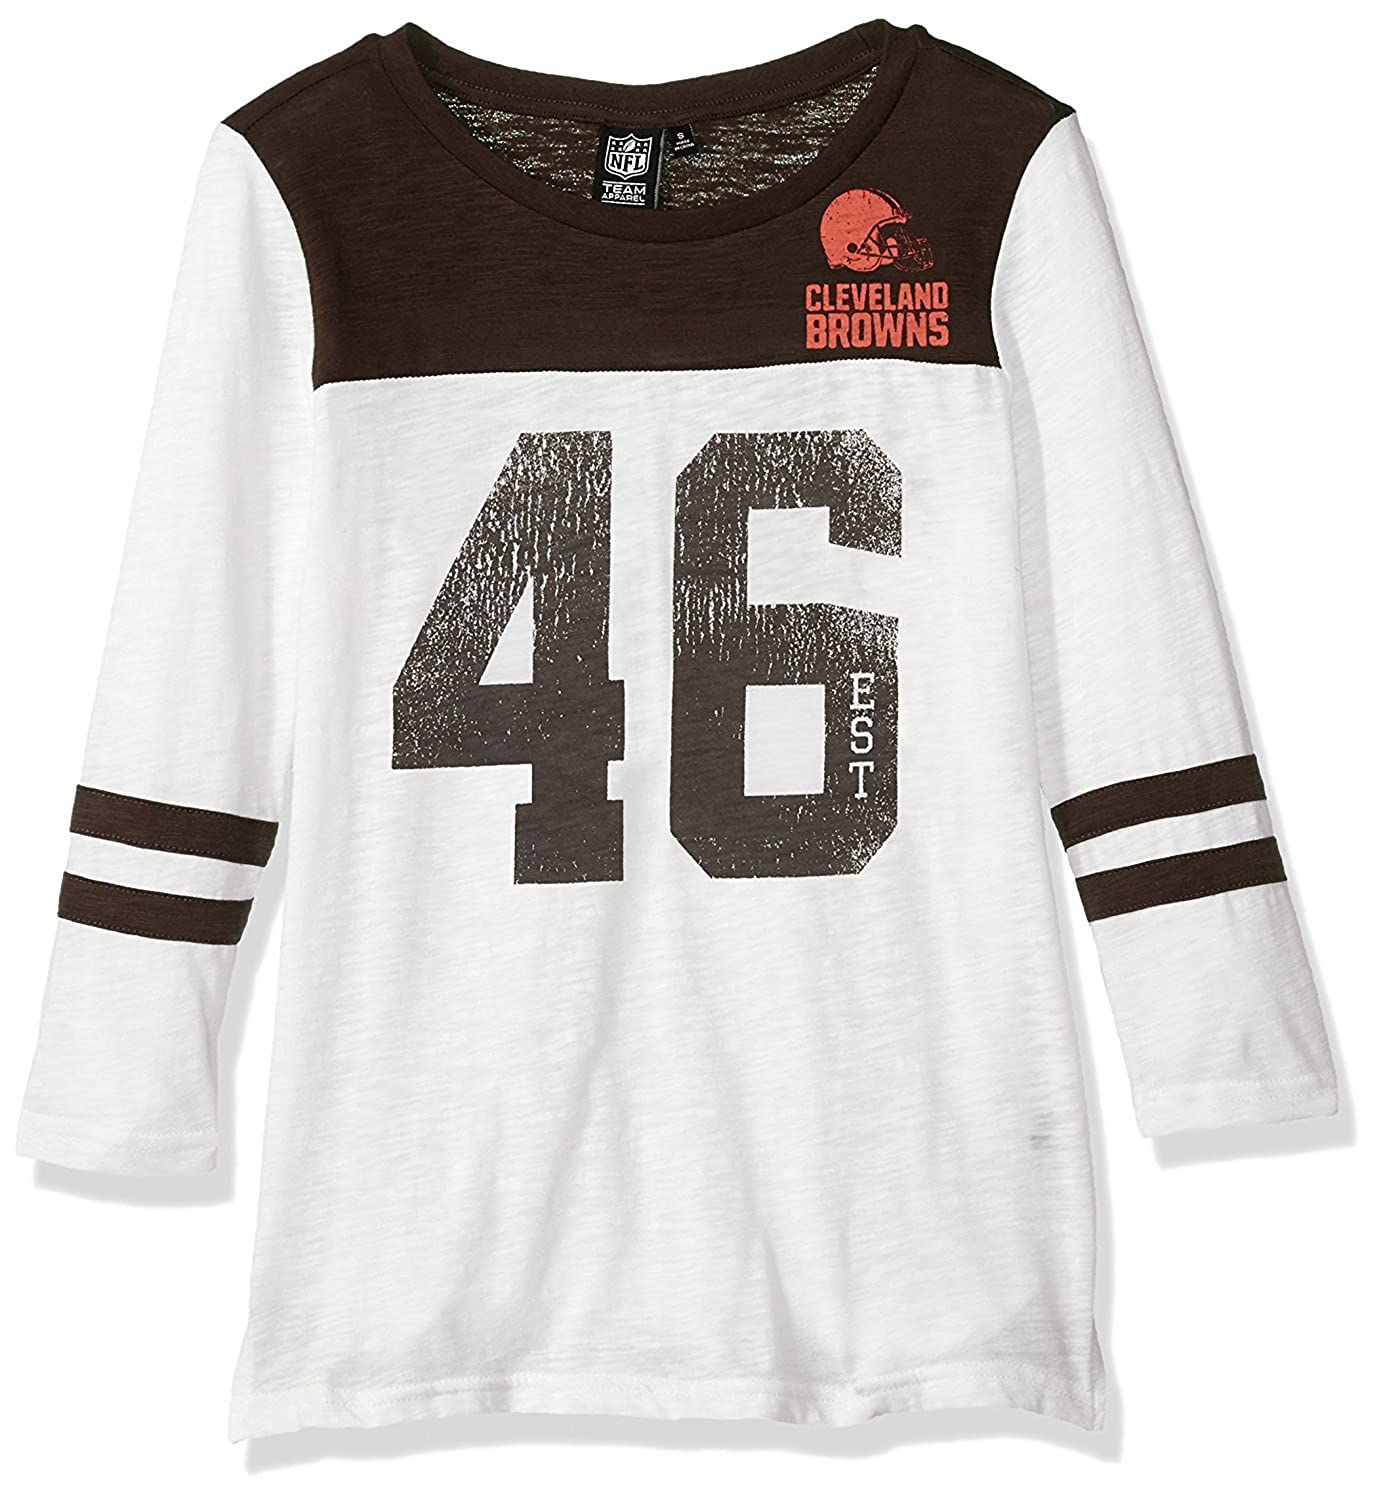 07c2262b Ultra Game NFL Cleveland Browns Women's Vintage 3/4 Long Sleeve Tee Shirt,  White, Large